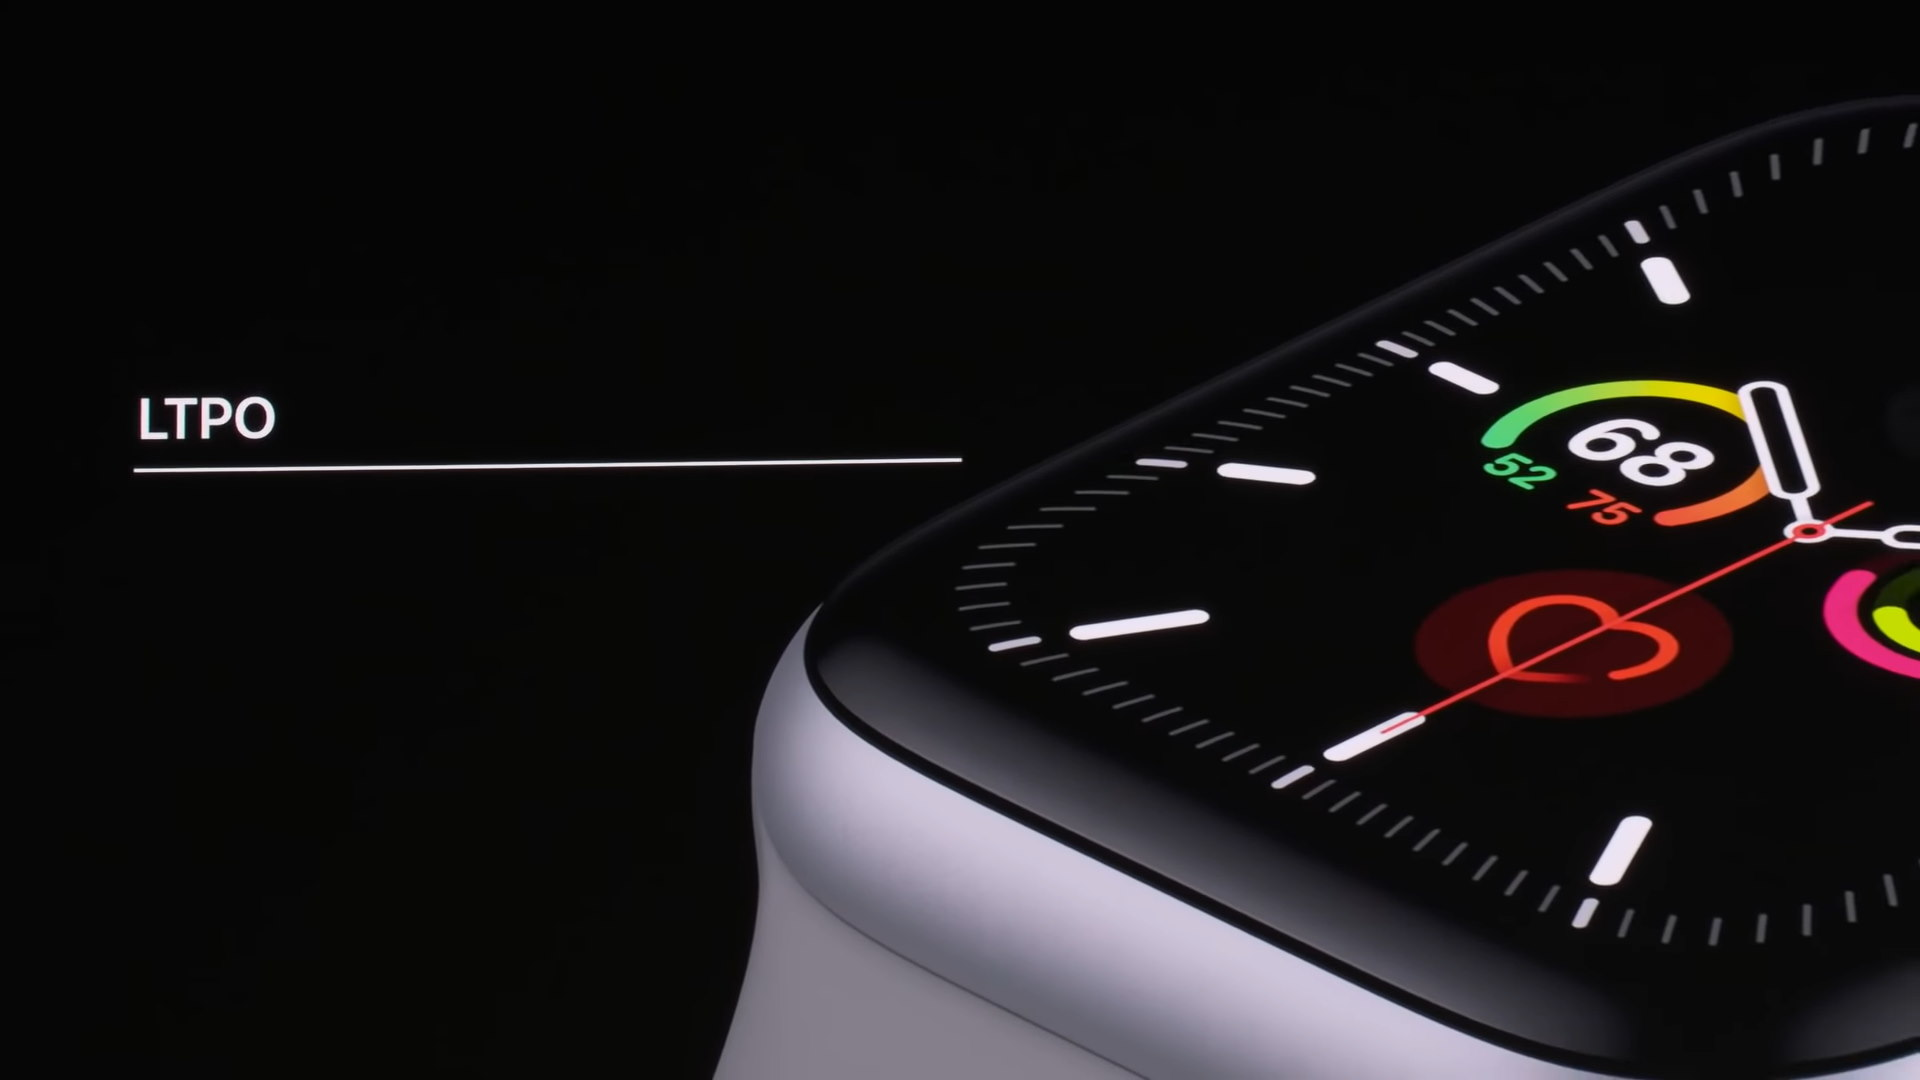 "Slide from Apple presentation with the Apple Watch and ""LTPO"" text"